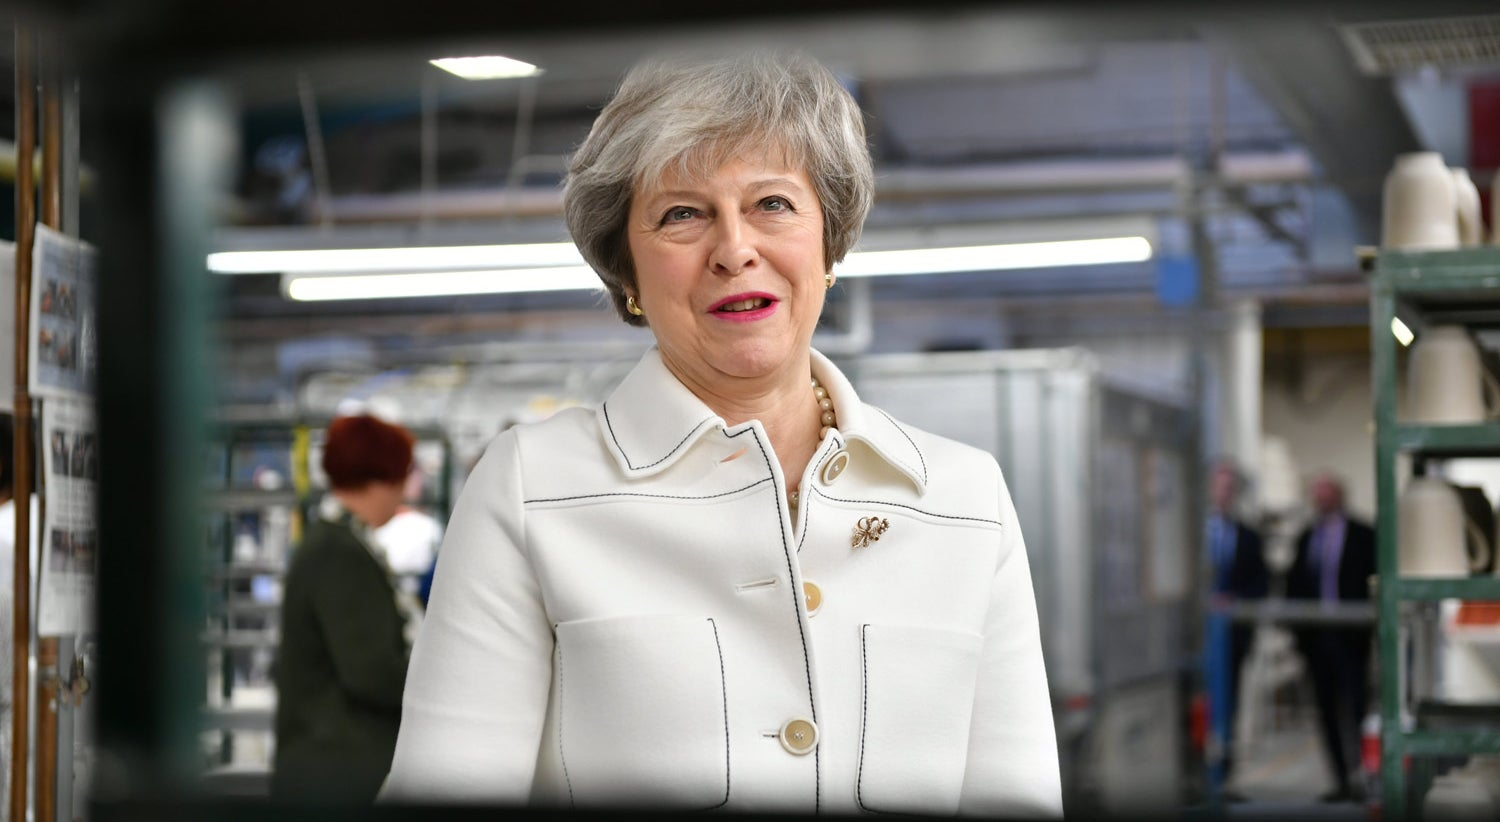 Ultimato de May: Sair com Acordo ou travar o Brexit